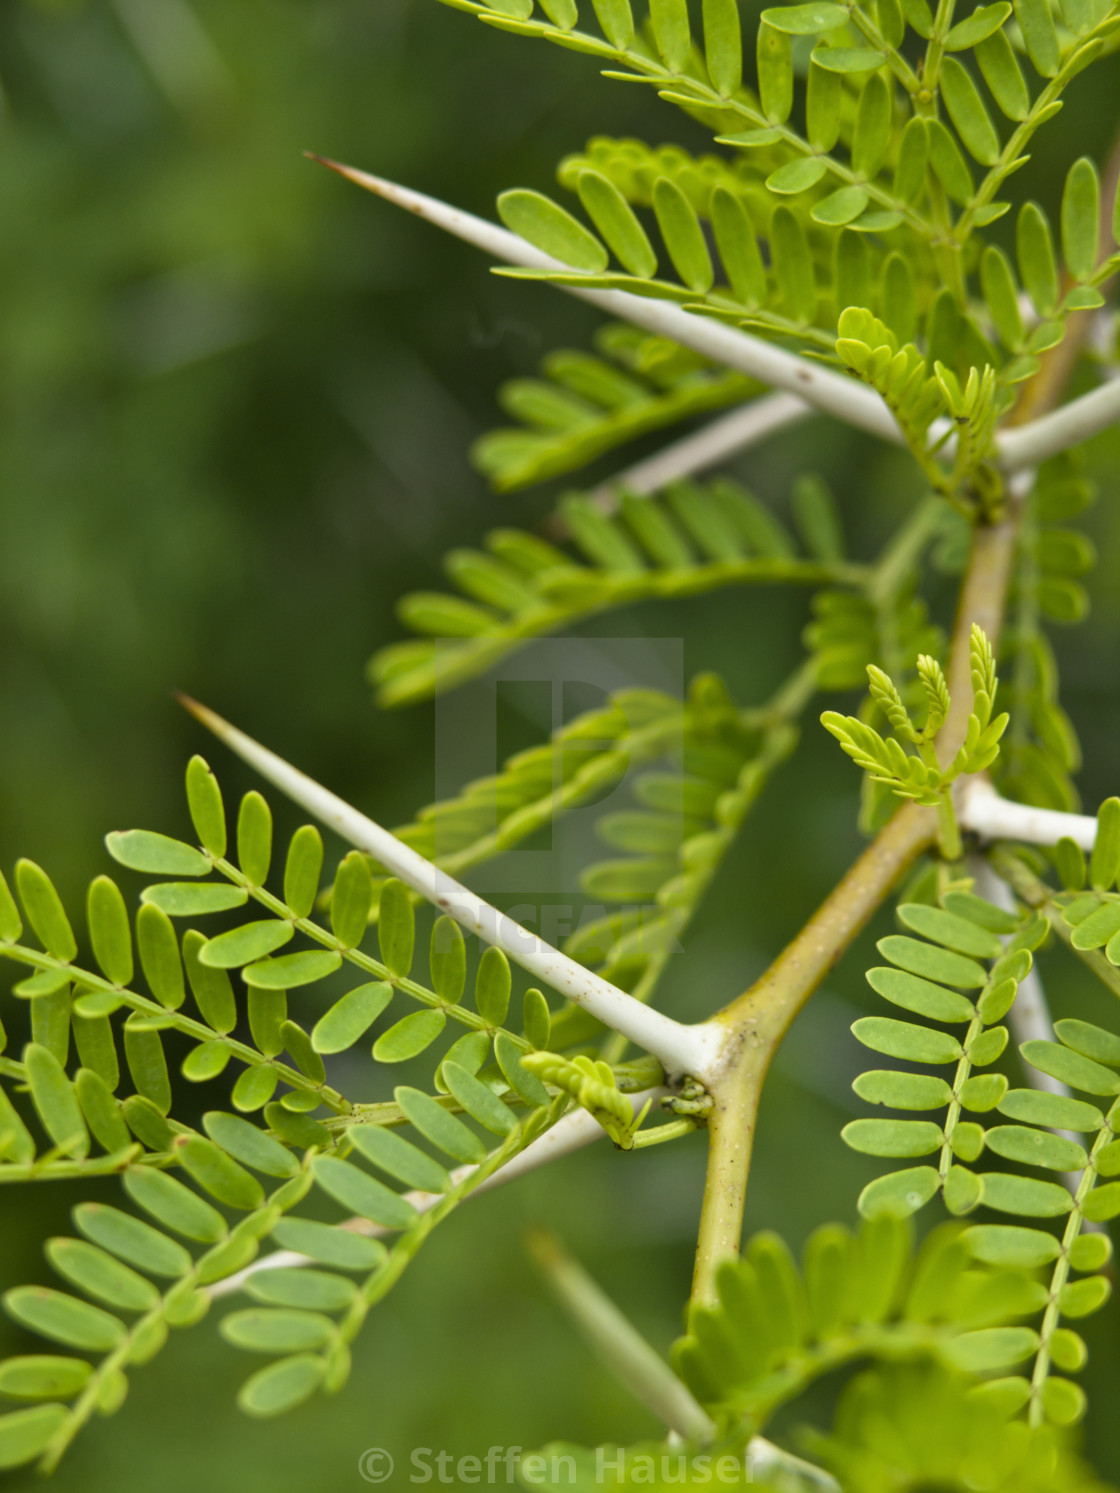 Sweet Thorn Acacia Karroo License Download Or Print For 4340